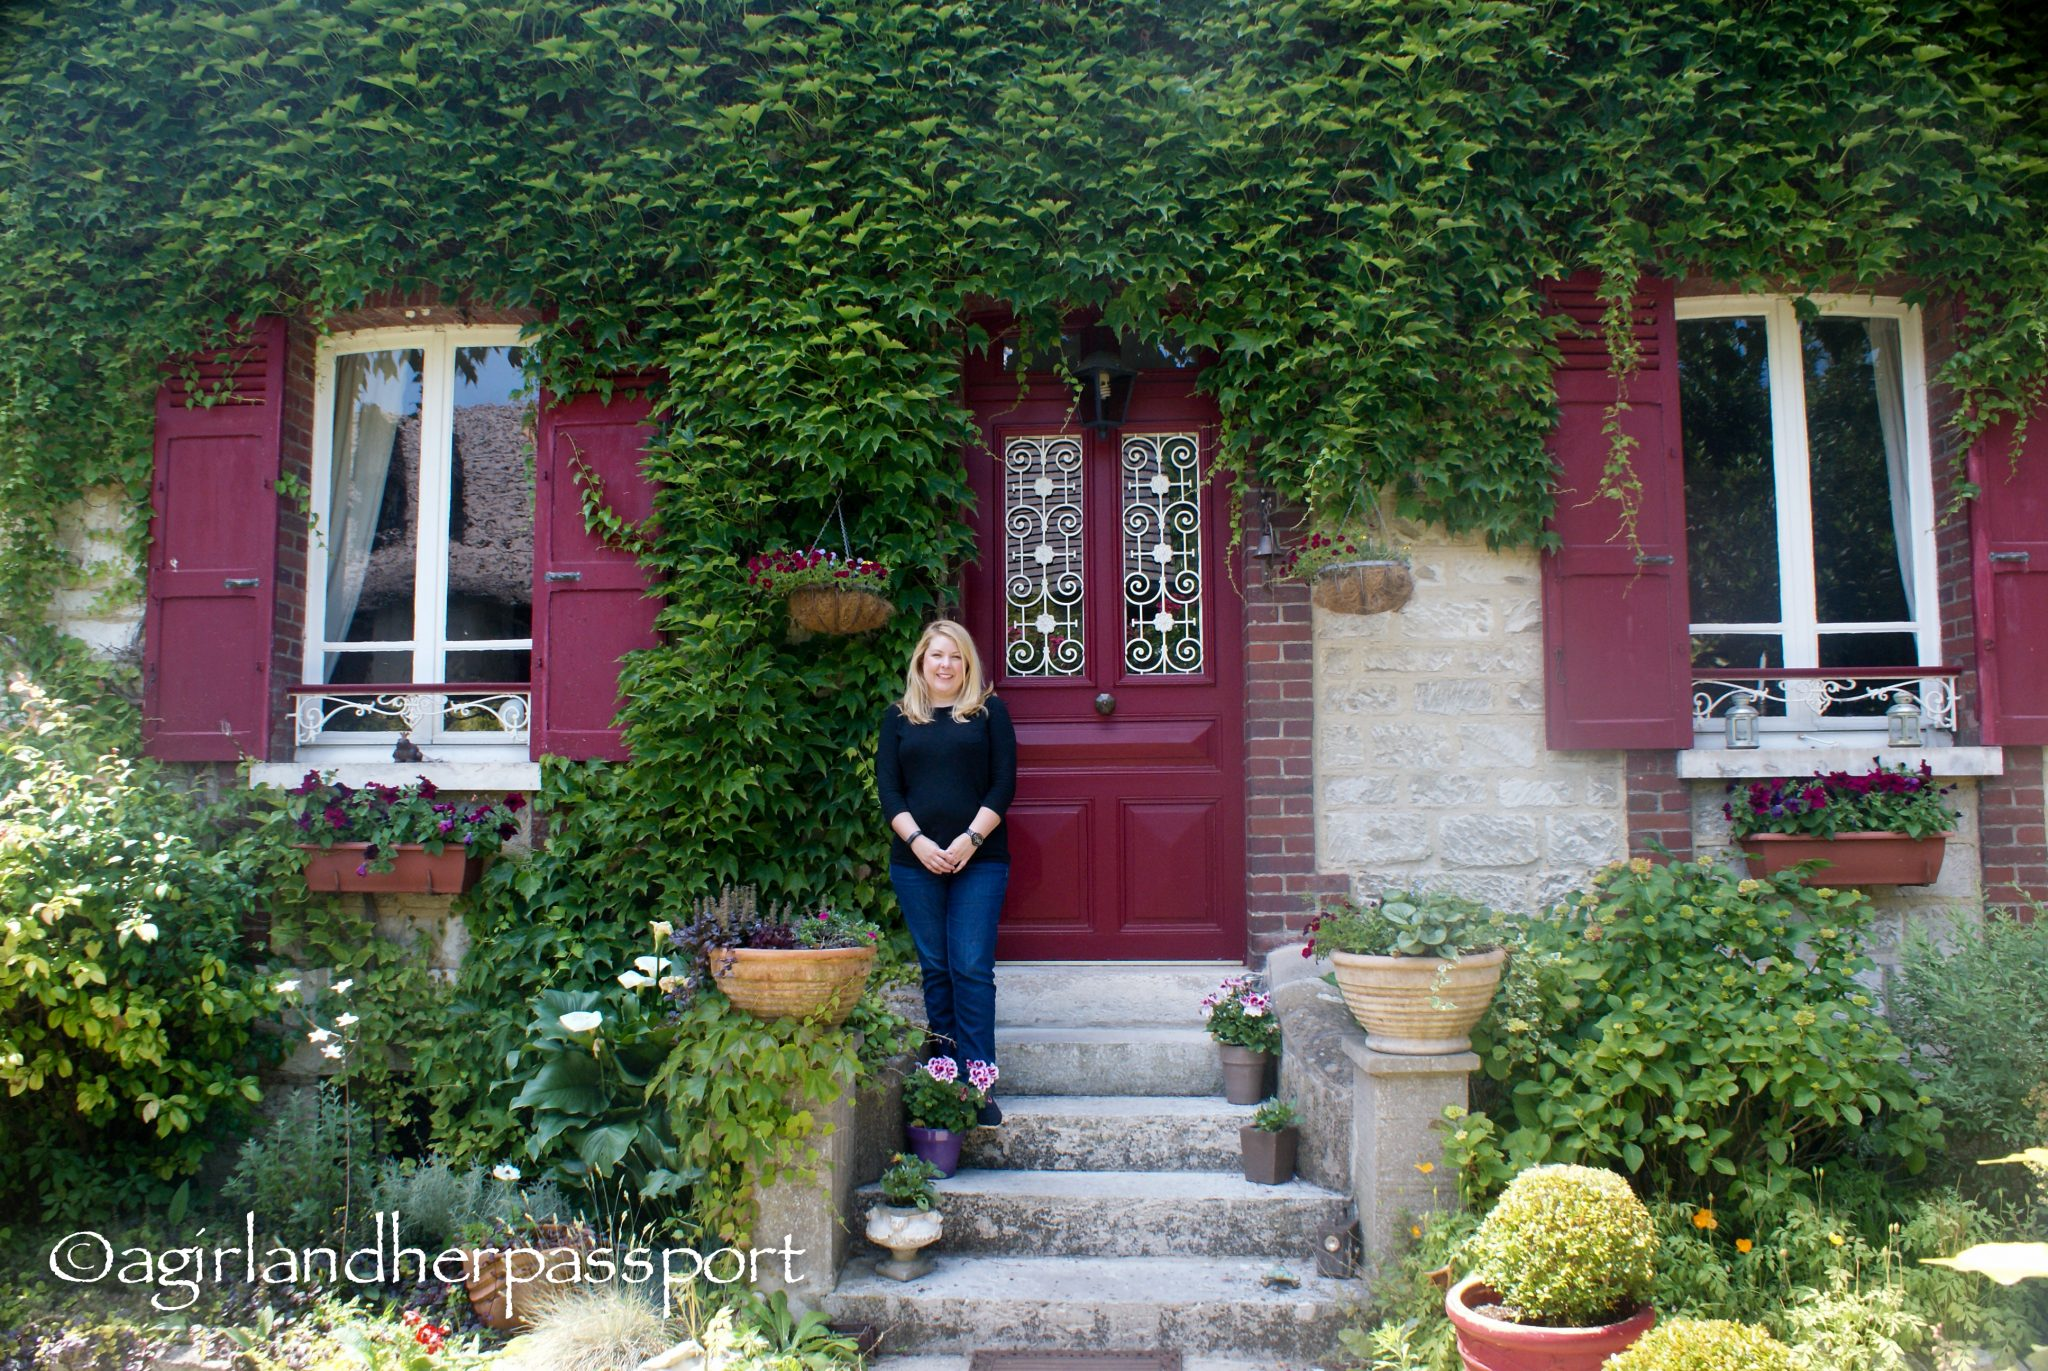 The Beautiful French Countryside in GivernyA Girl and Her Passport